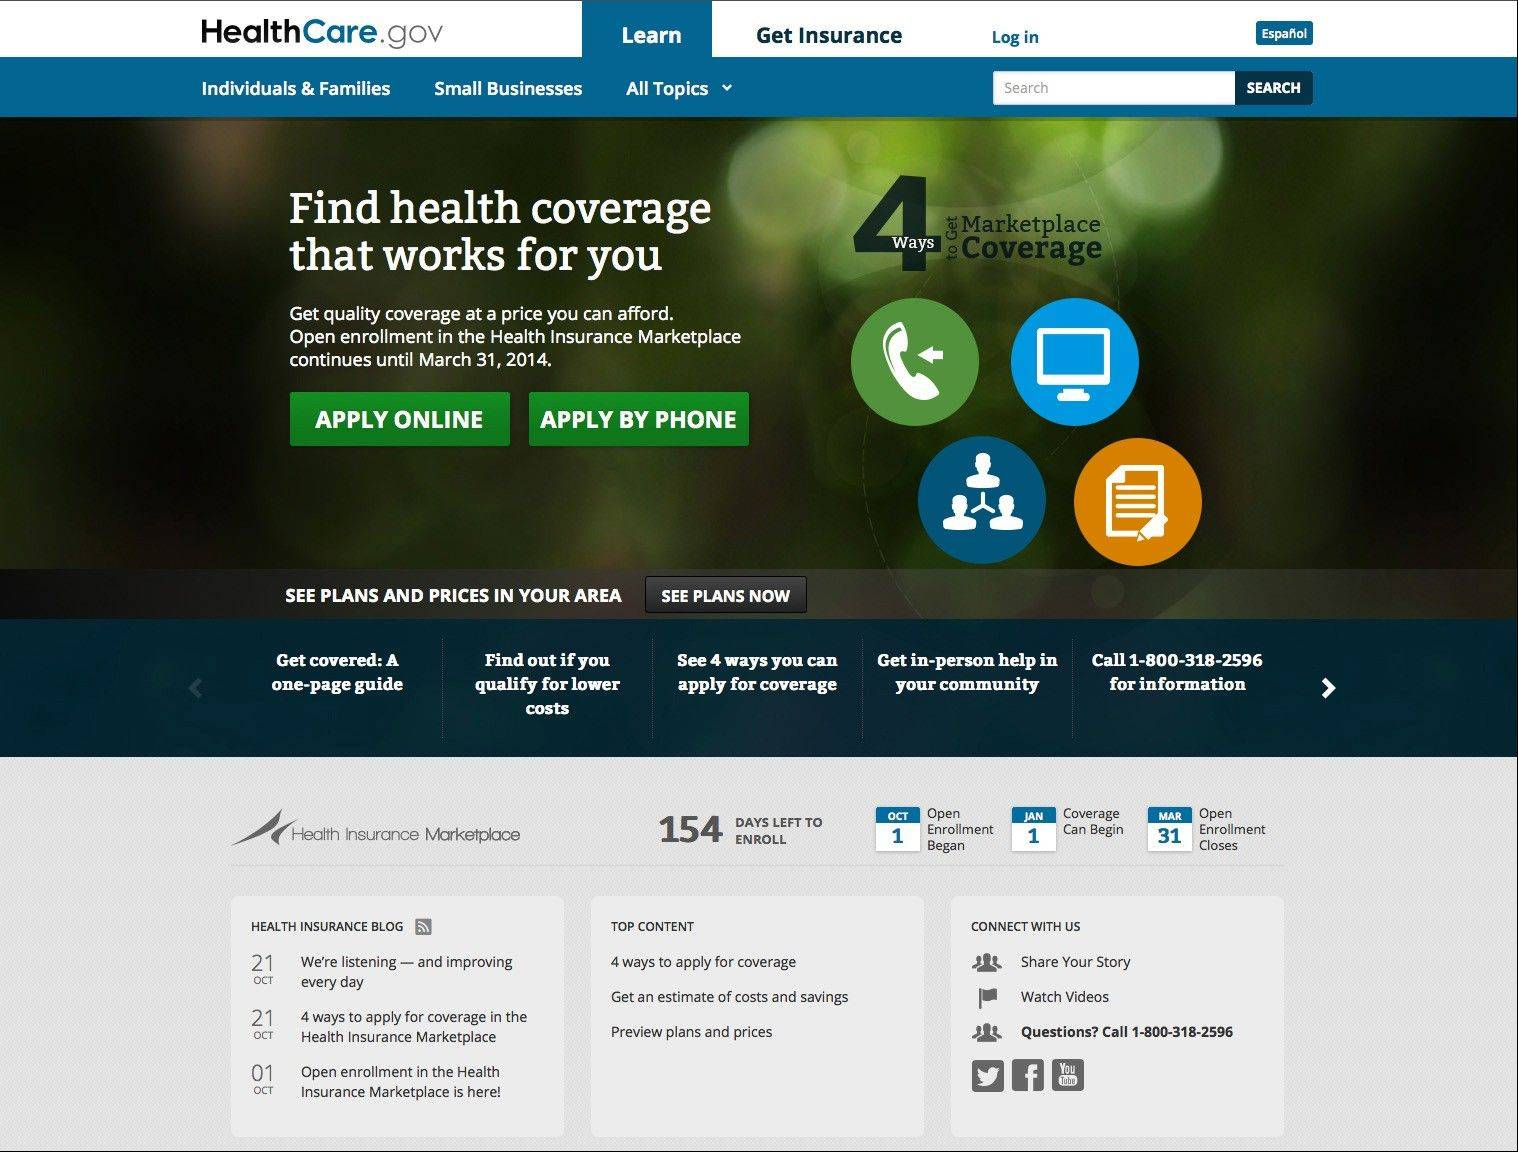 This is the U.S. Department of Health and Human Services' main landing web page for HealthCare.gov. Illinois is relying on the federal system for its citizens to sign up for health insurance through the Affordable Care Act's exchanges.